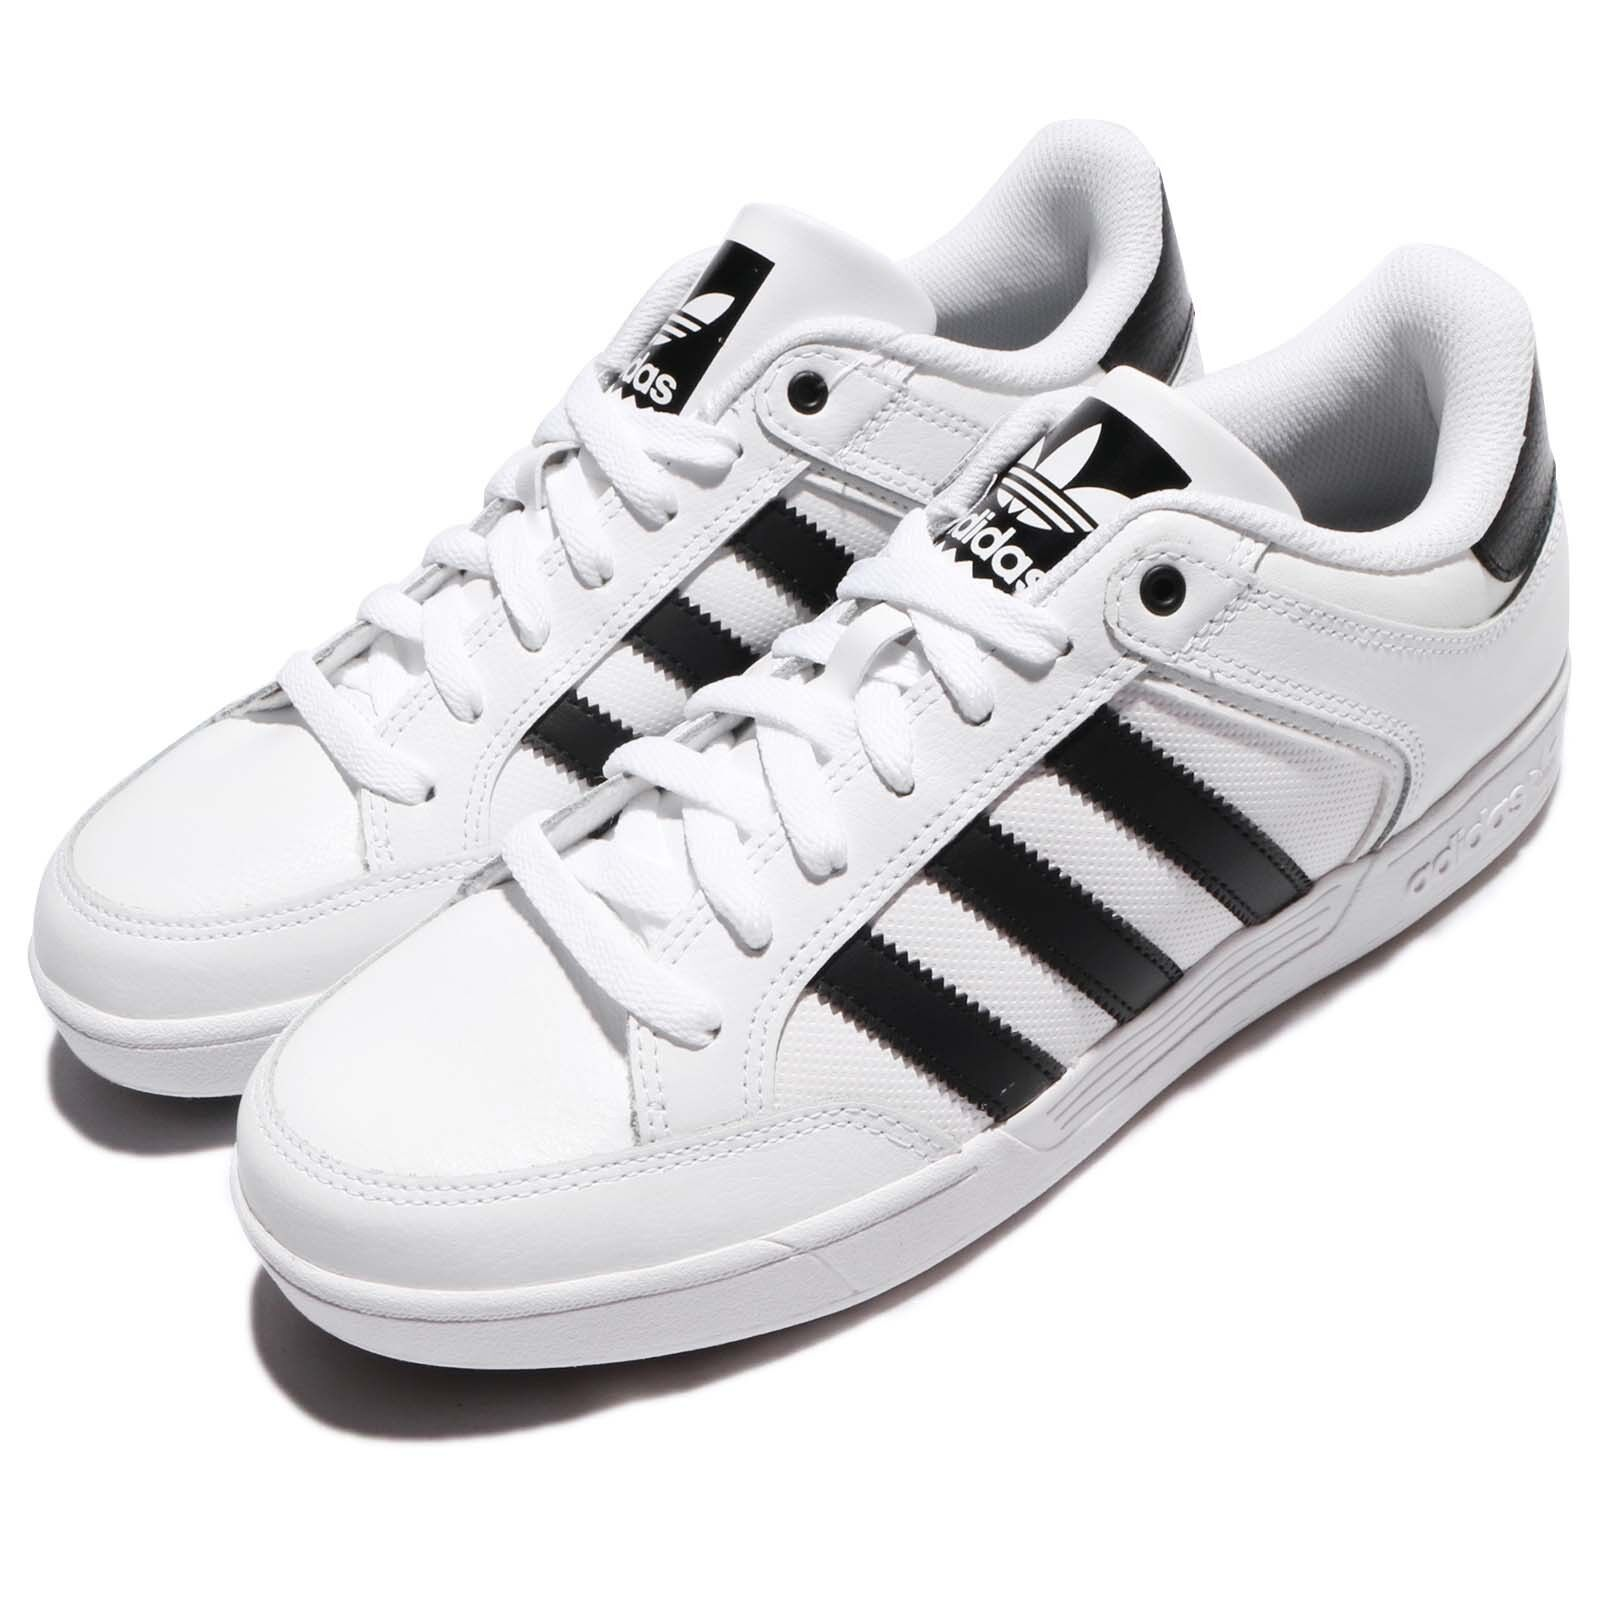 adidas Originals Varial Low White Black Men Shoes Sneakers Trainers BY4056